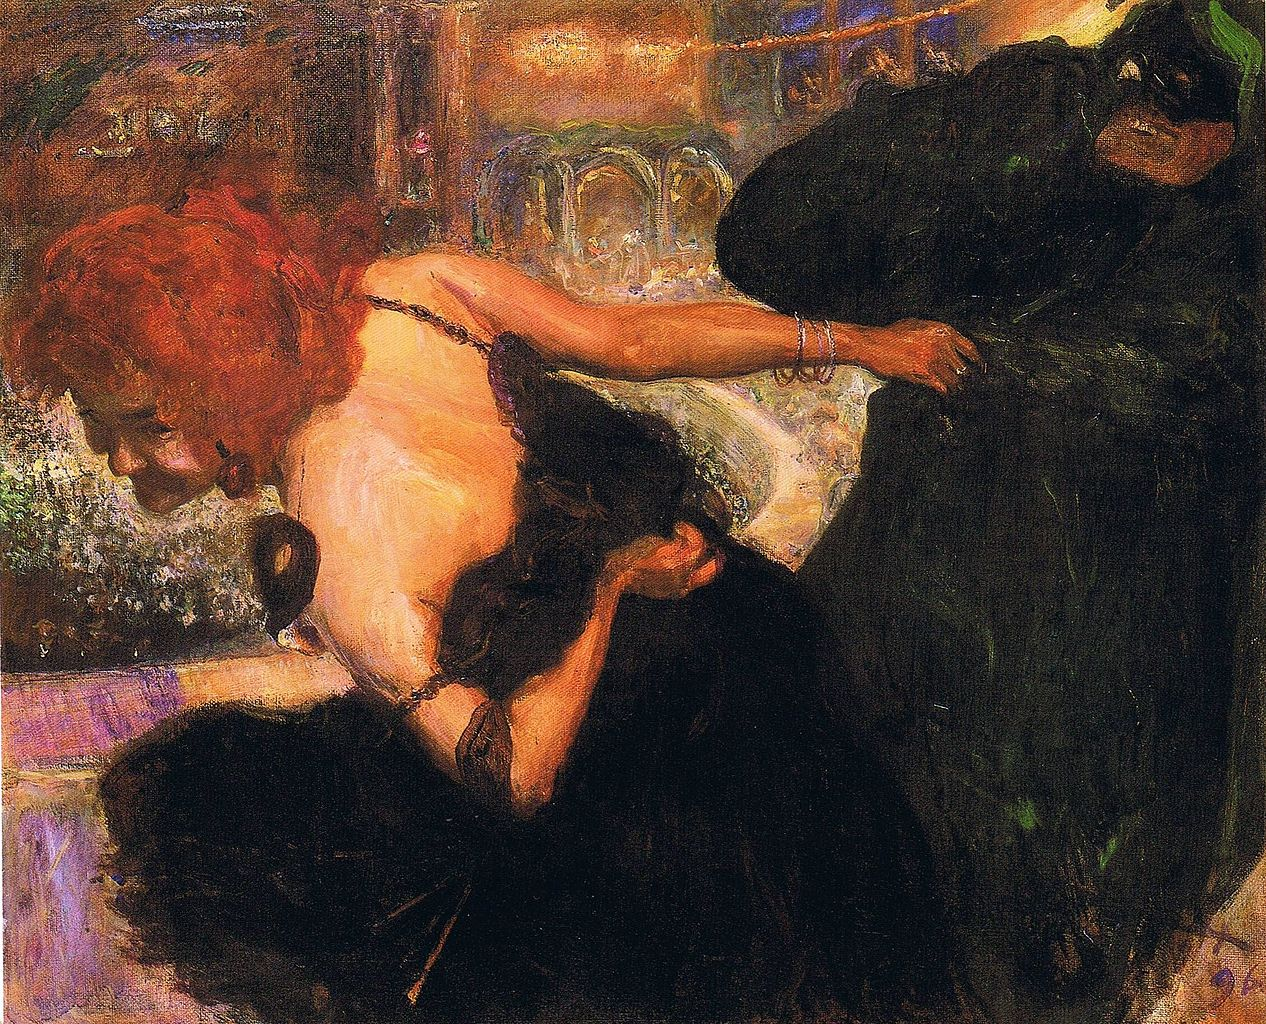 Death Dance, 1896,Max Slevogt (1868–1932) oil on canvas,Museum Georg Schäfer,in Schweinfurt, Bavaria, Germany